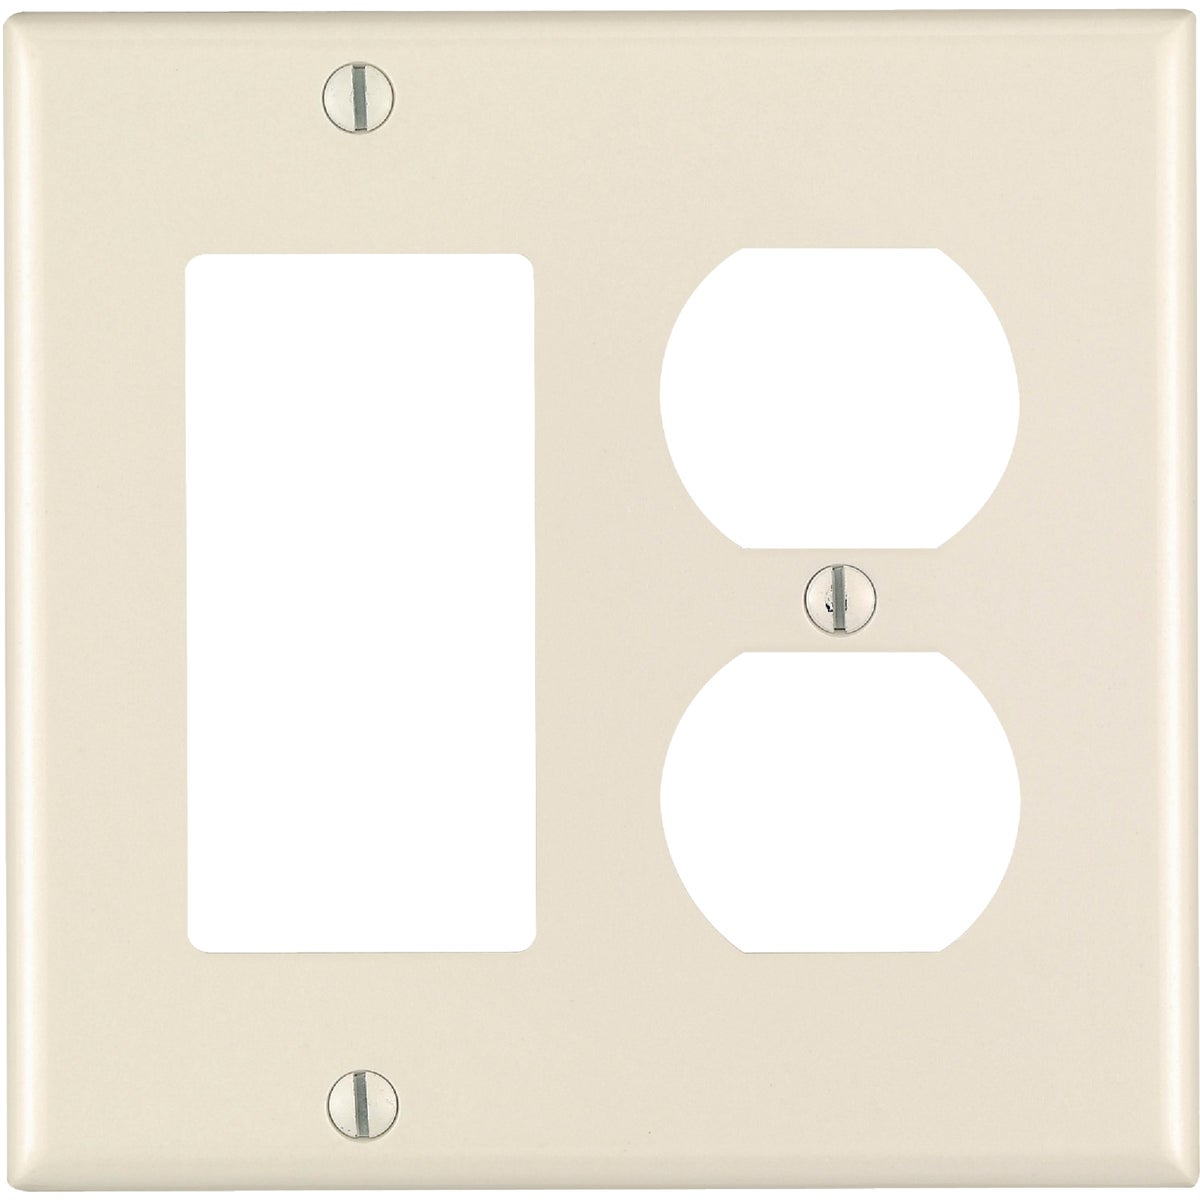 LT ALM DPL/GFI WALLPLATE - 004-80455-OOT by Leviton Mfg Co